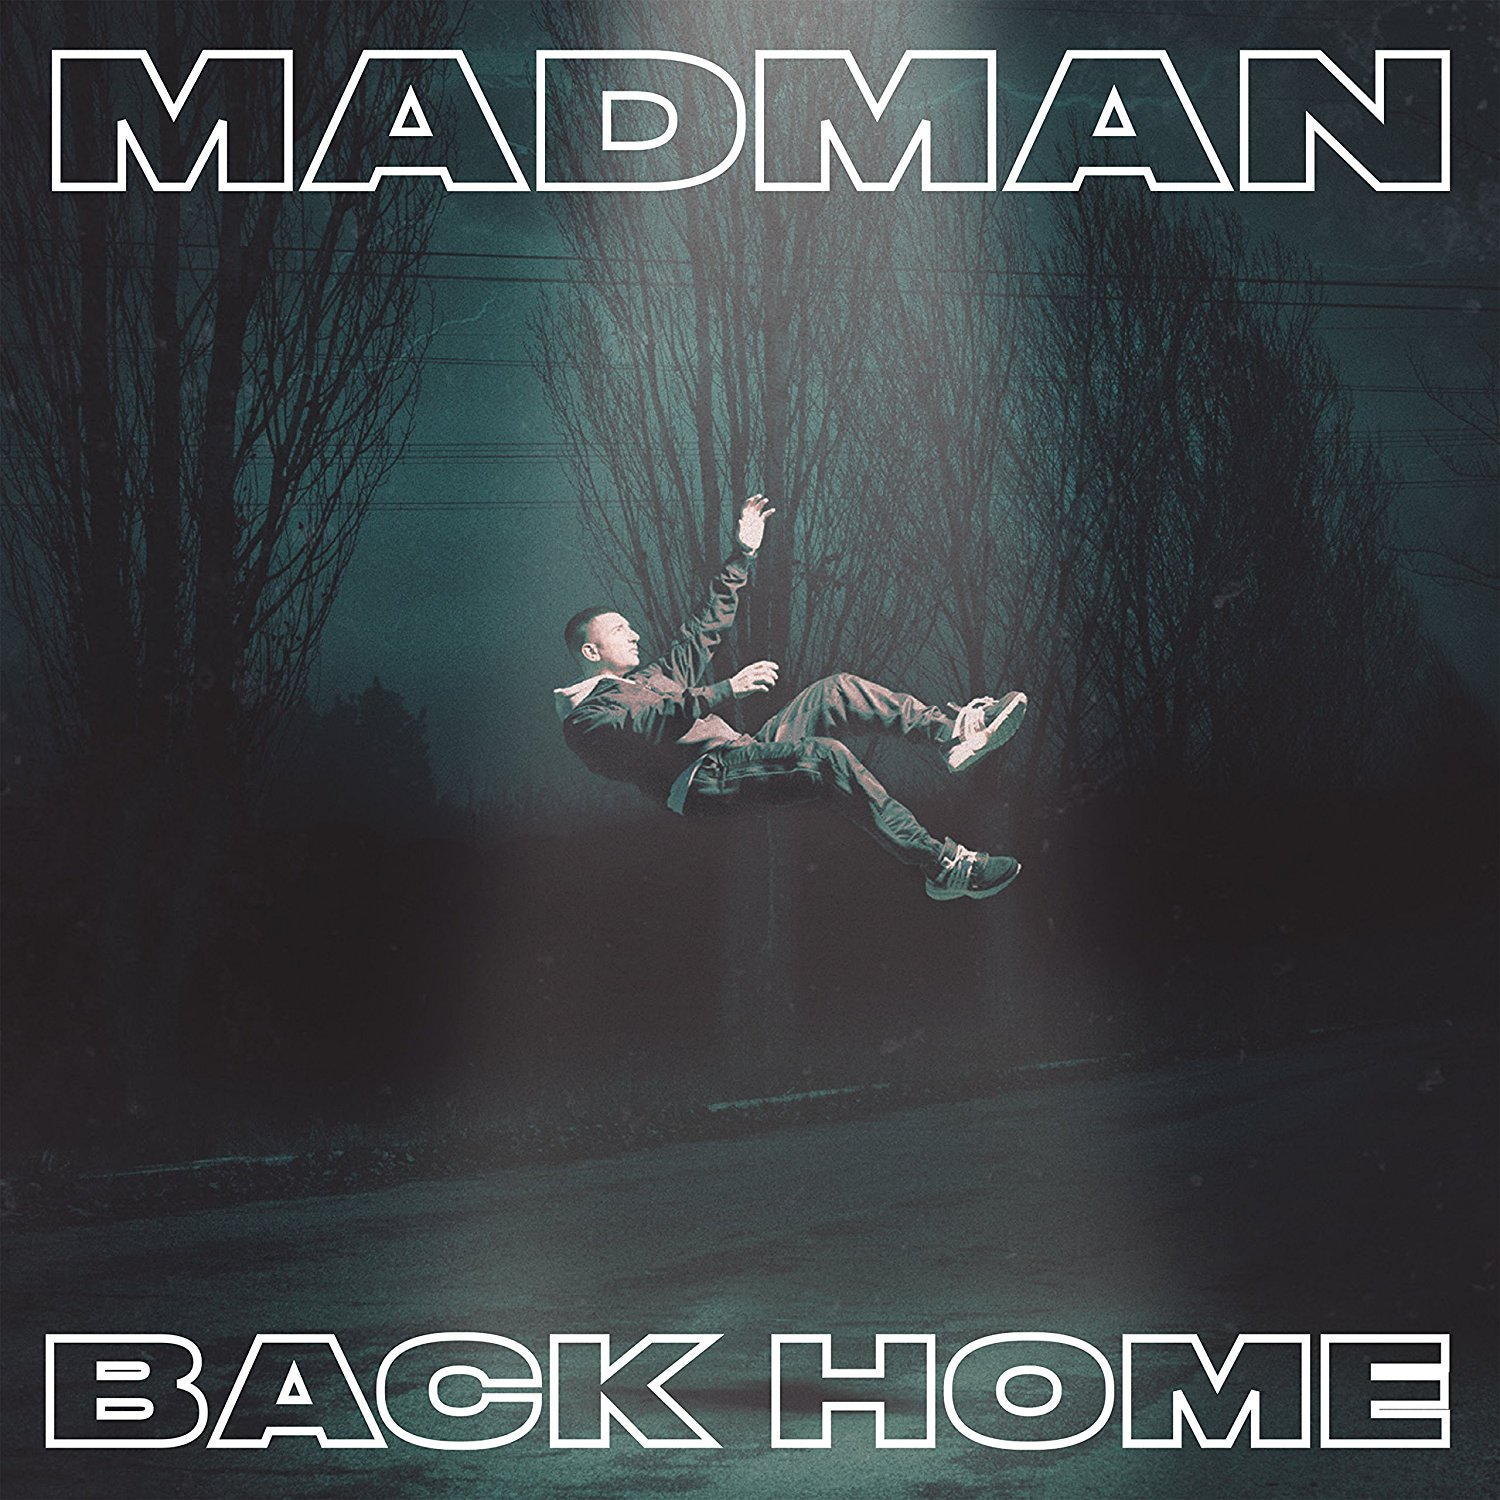 MADMAN - BACK HOME (DELUXE EDITION) (CD)